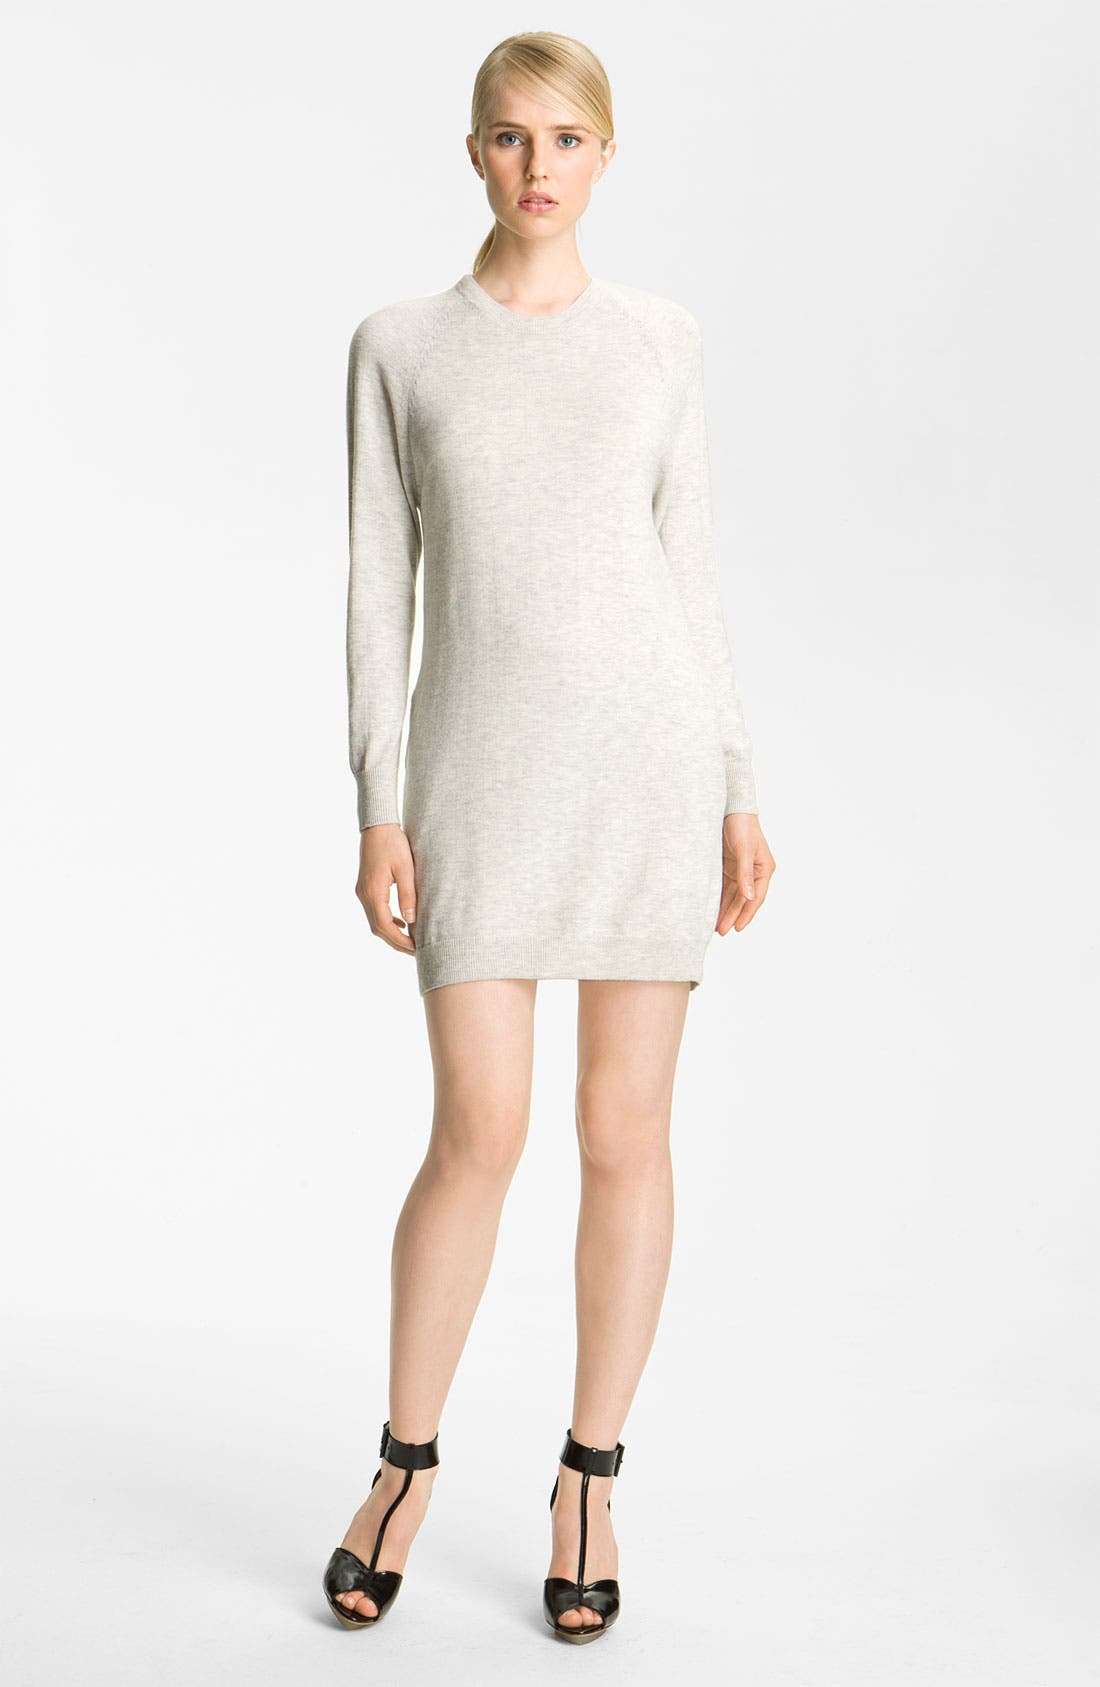 Alternate Image 1 Selected - 3.1 Phillip Lim Sweater Dress